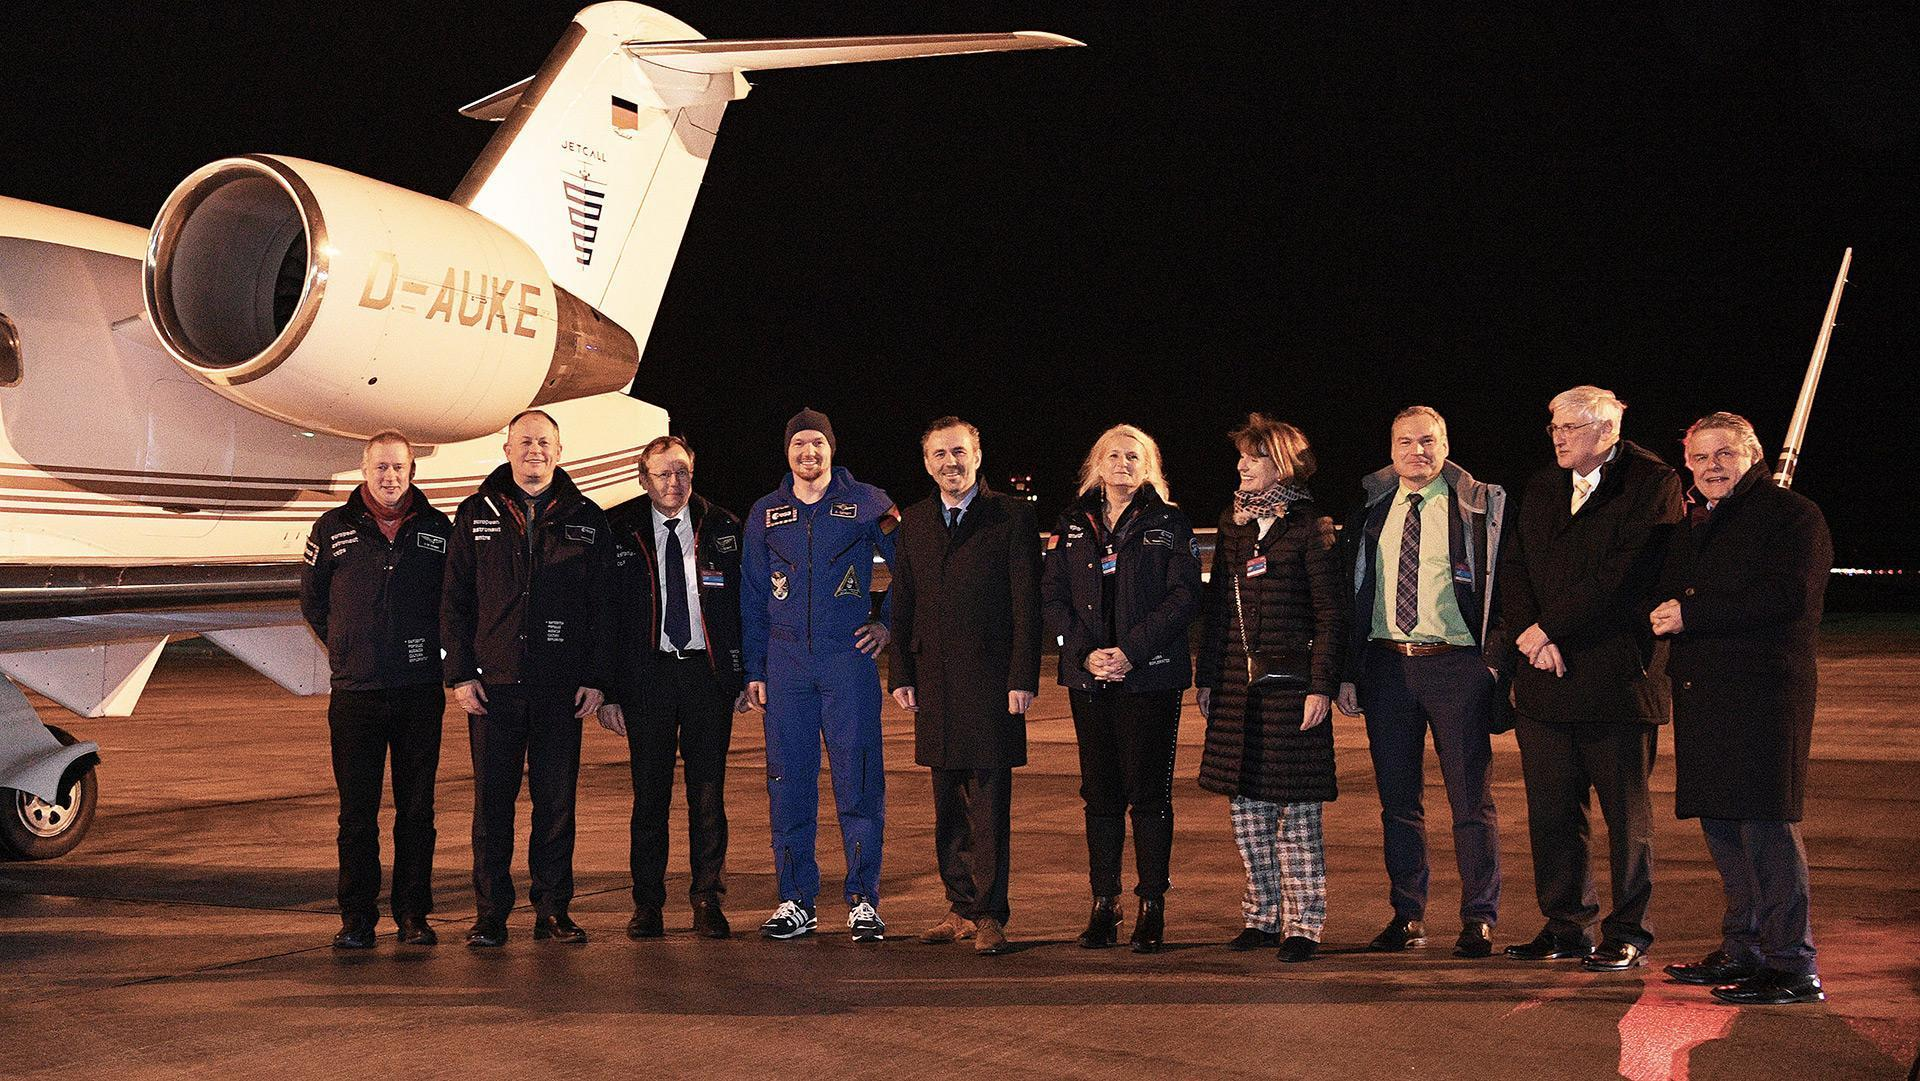 Reception for Alexander Gerst at Cologne/Bonn Airport